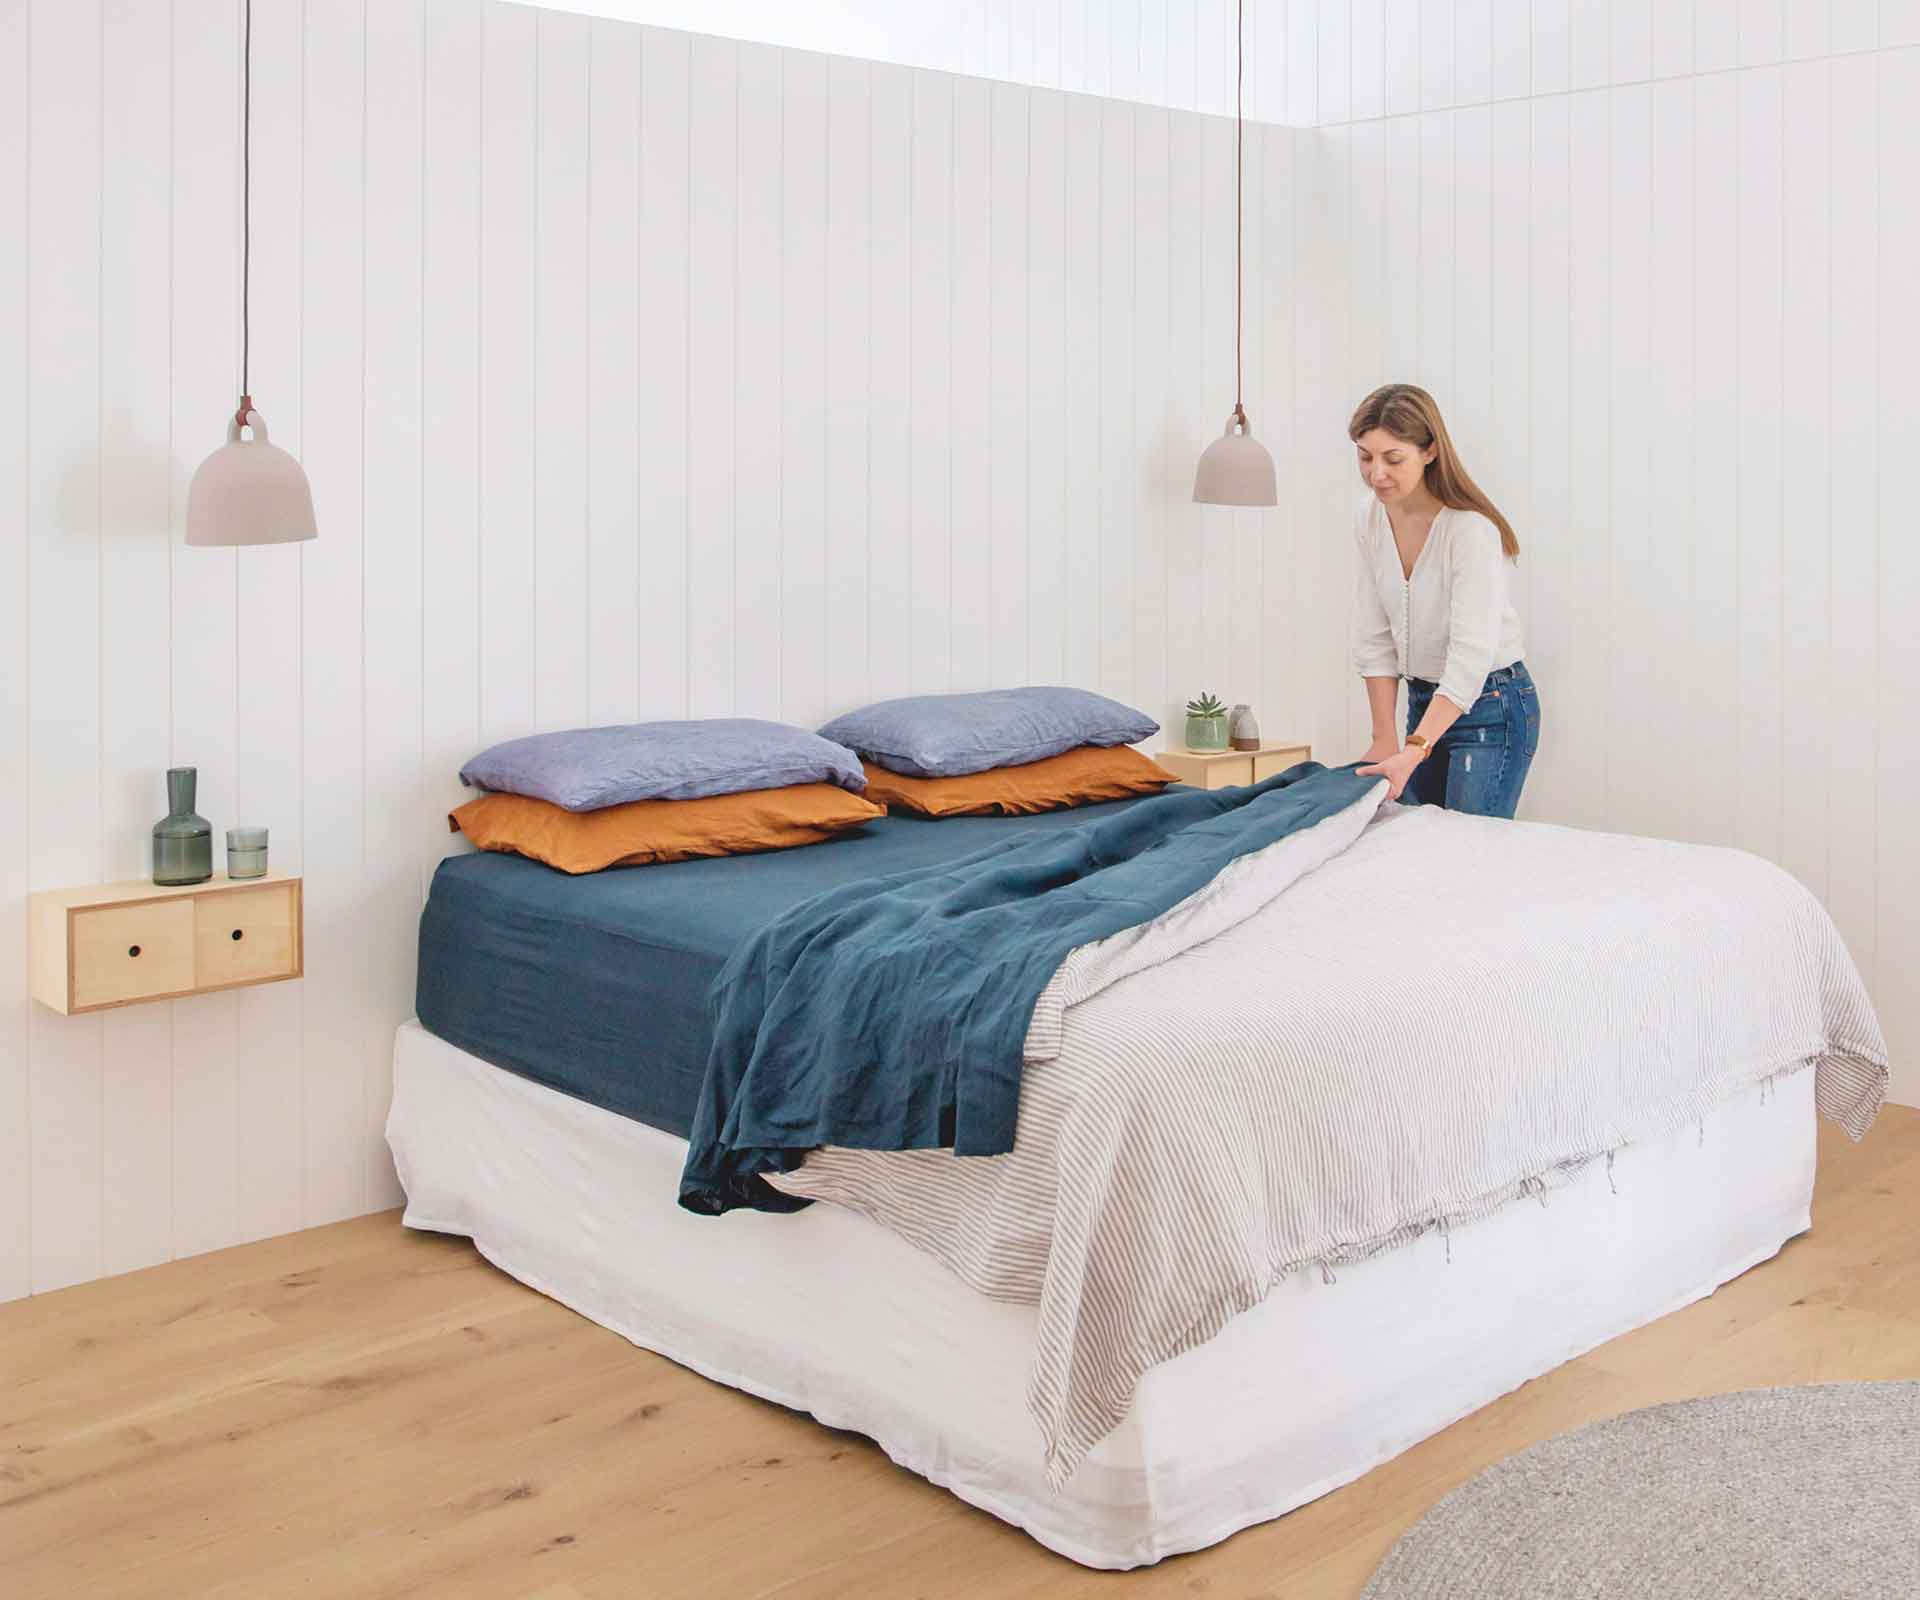 Bedding: 10 tips on how to buy & care for your bedding | Homes To Love